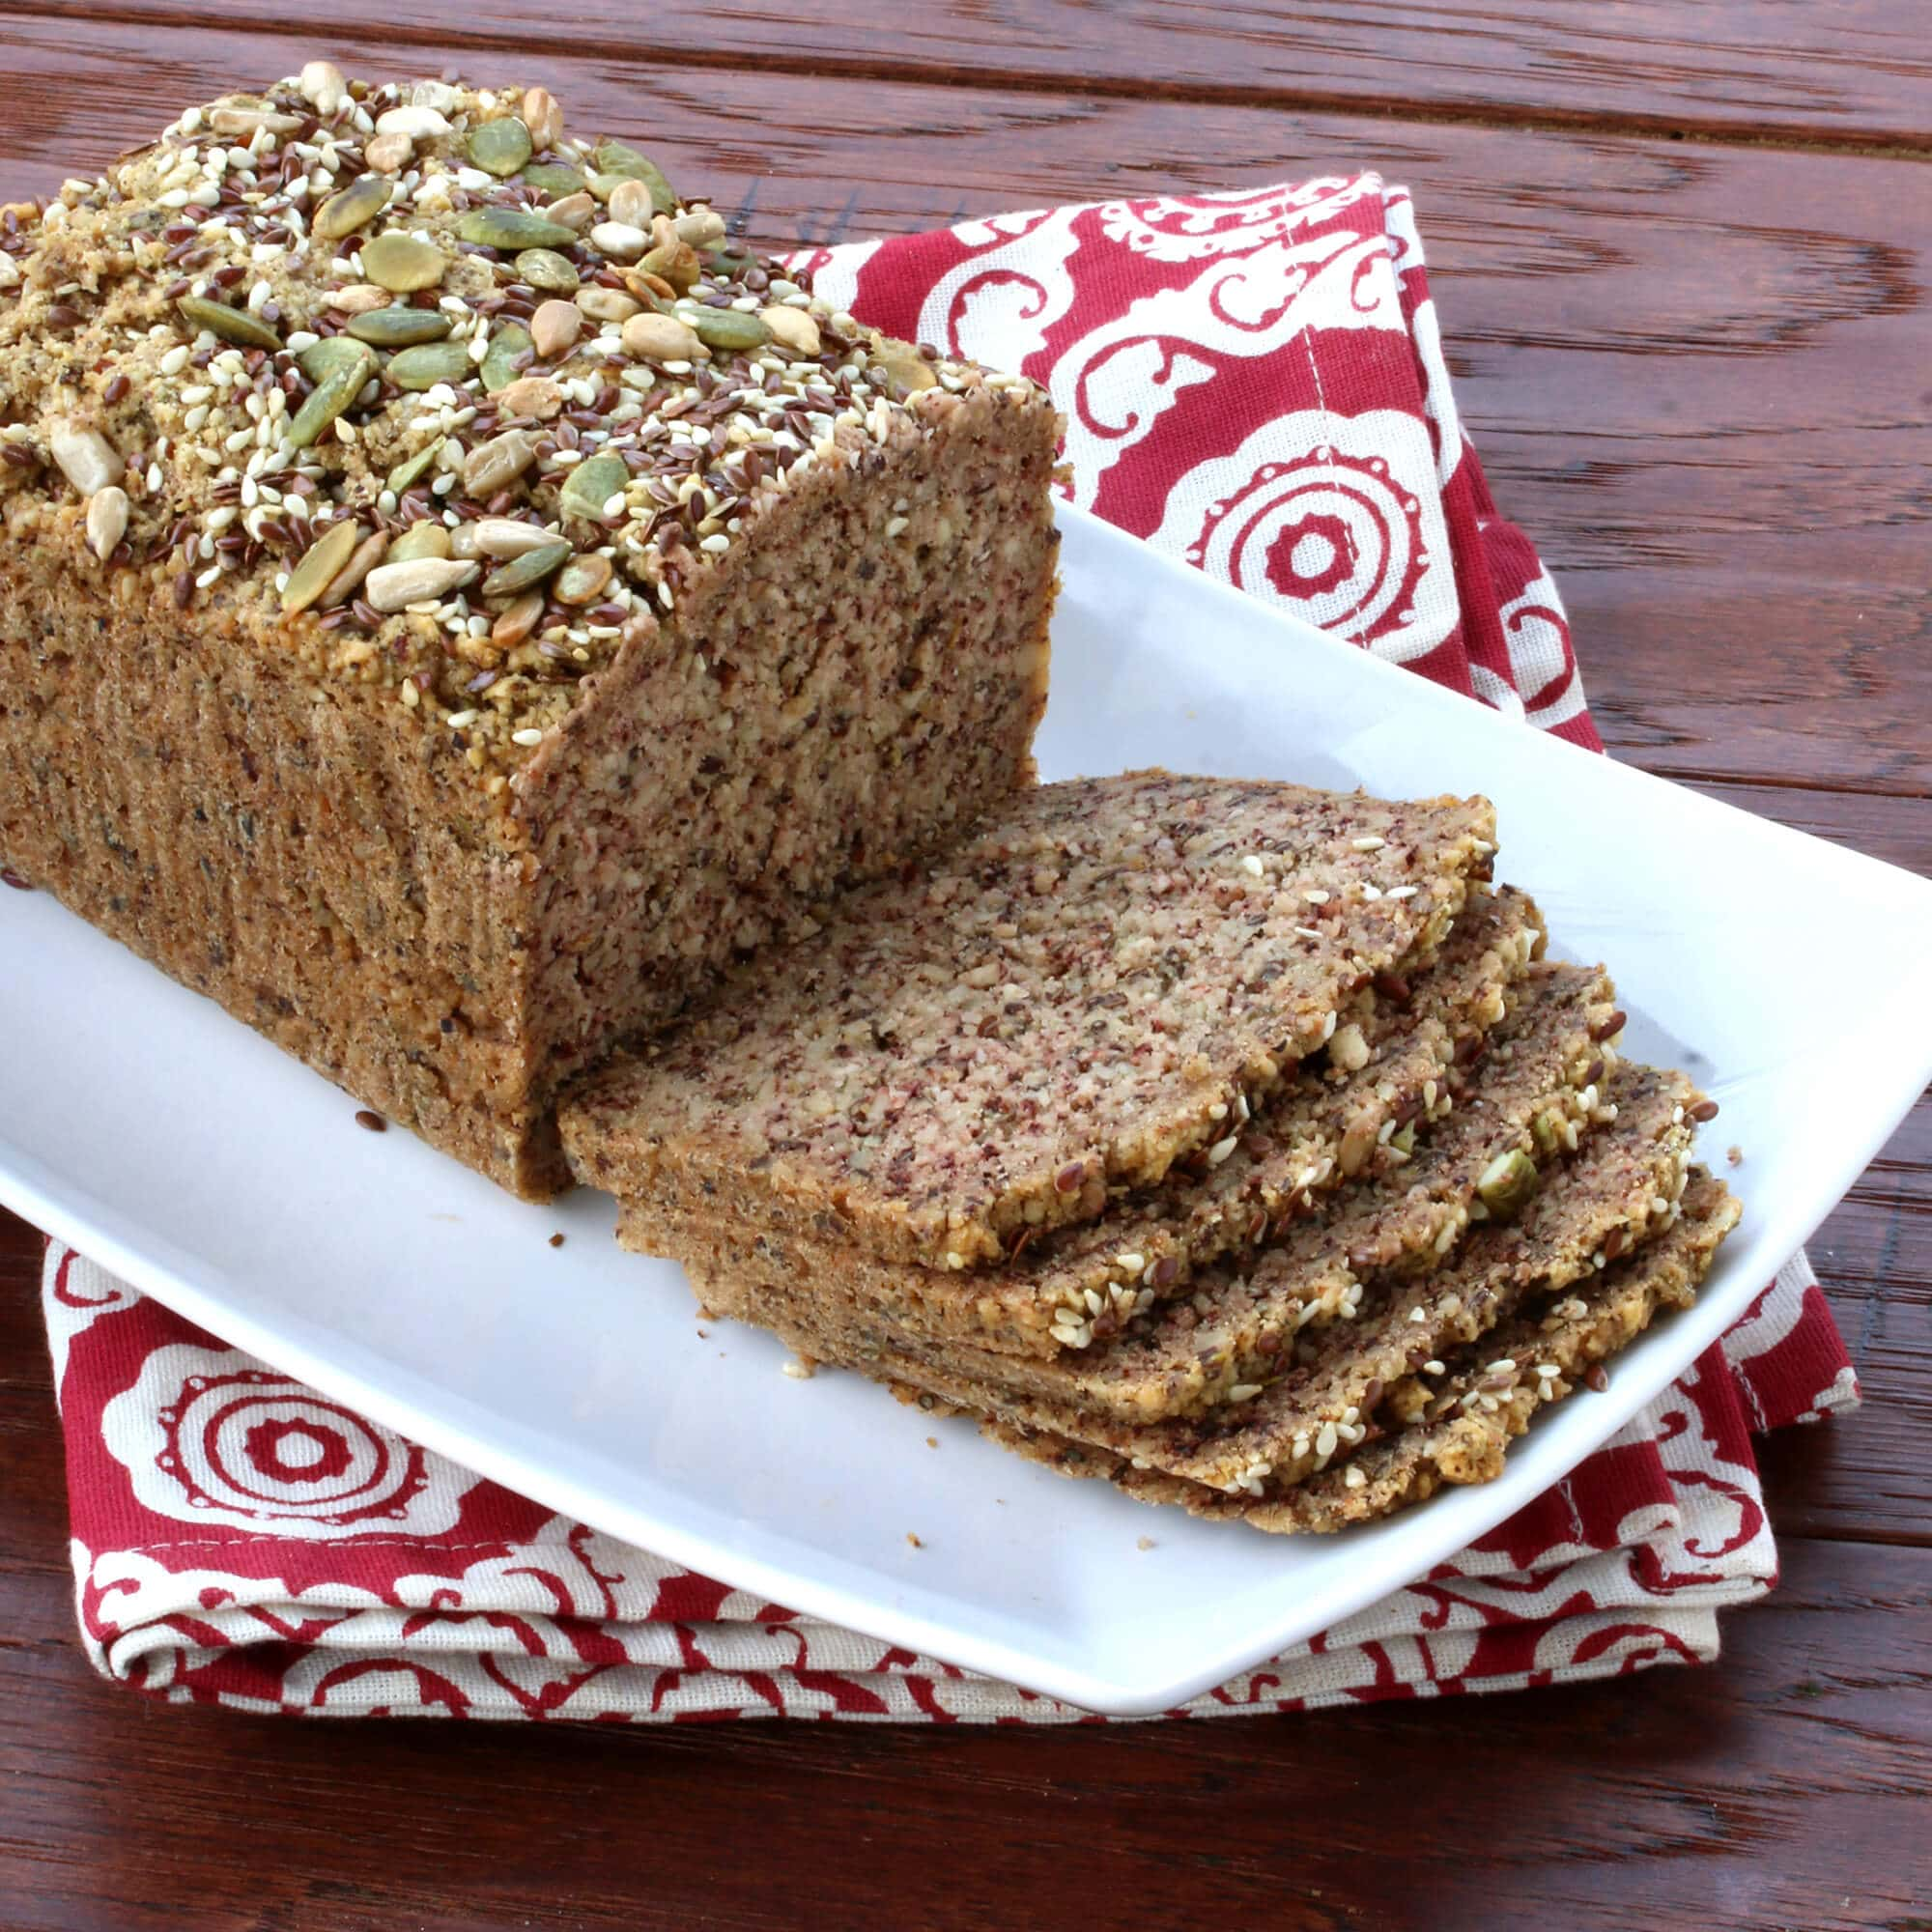 Low Carb High Protein Nut Seed Bread Paleo The Daring Gourmet Sq Chunky Bar White 100 Gr For An Extra Boost Of I Added Nearly A Cup Silks New Milk To This Its Soy Free And Each Serving Has 10 Grams